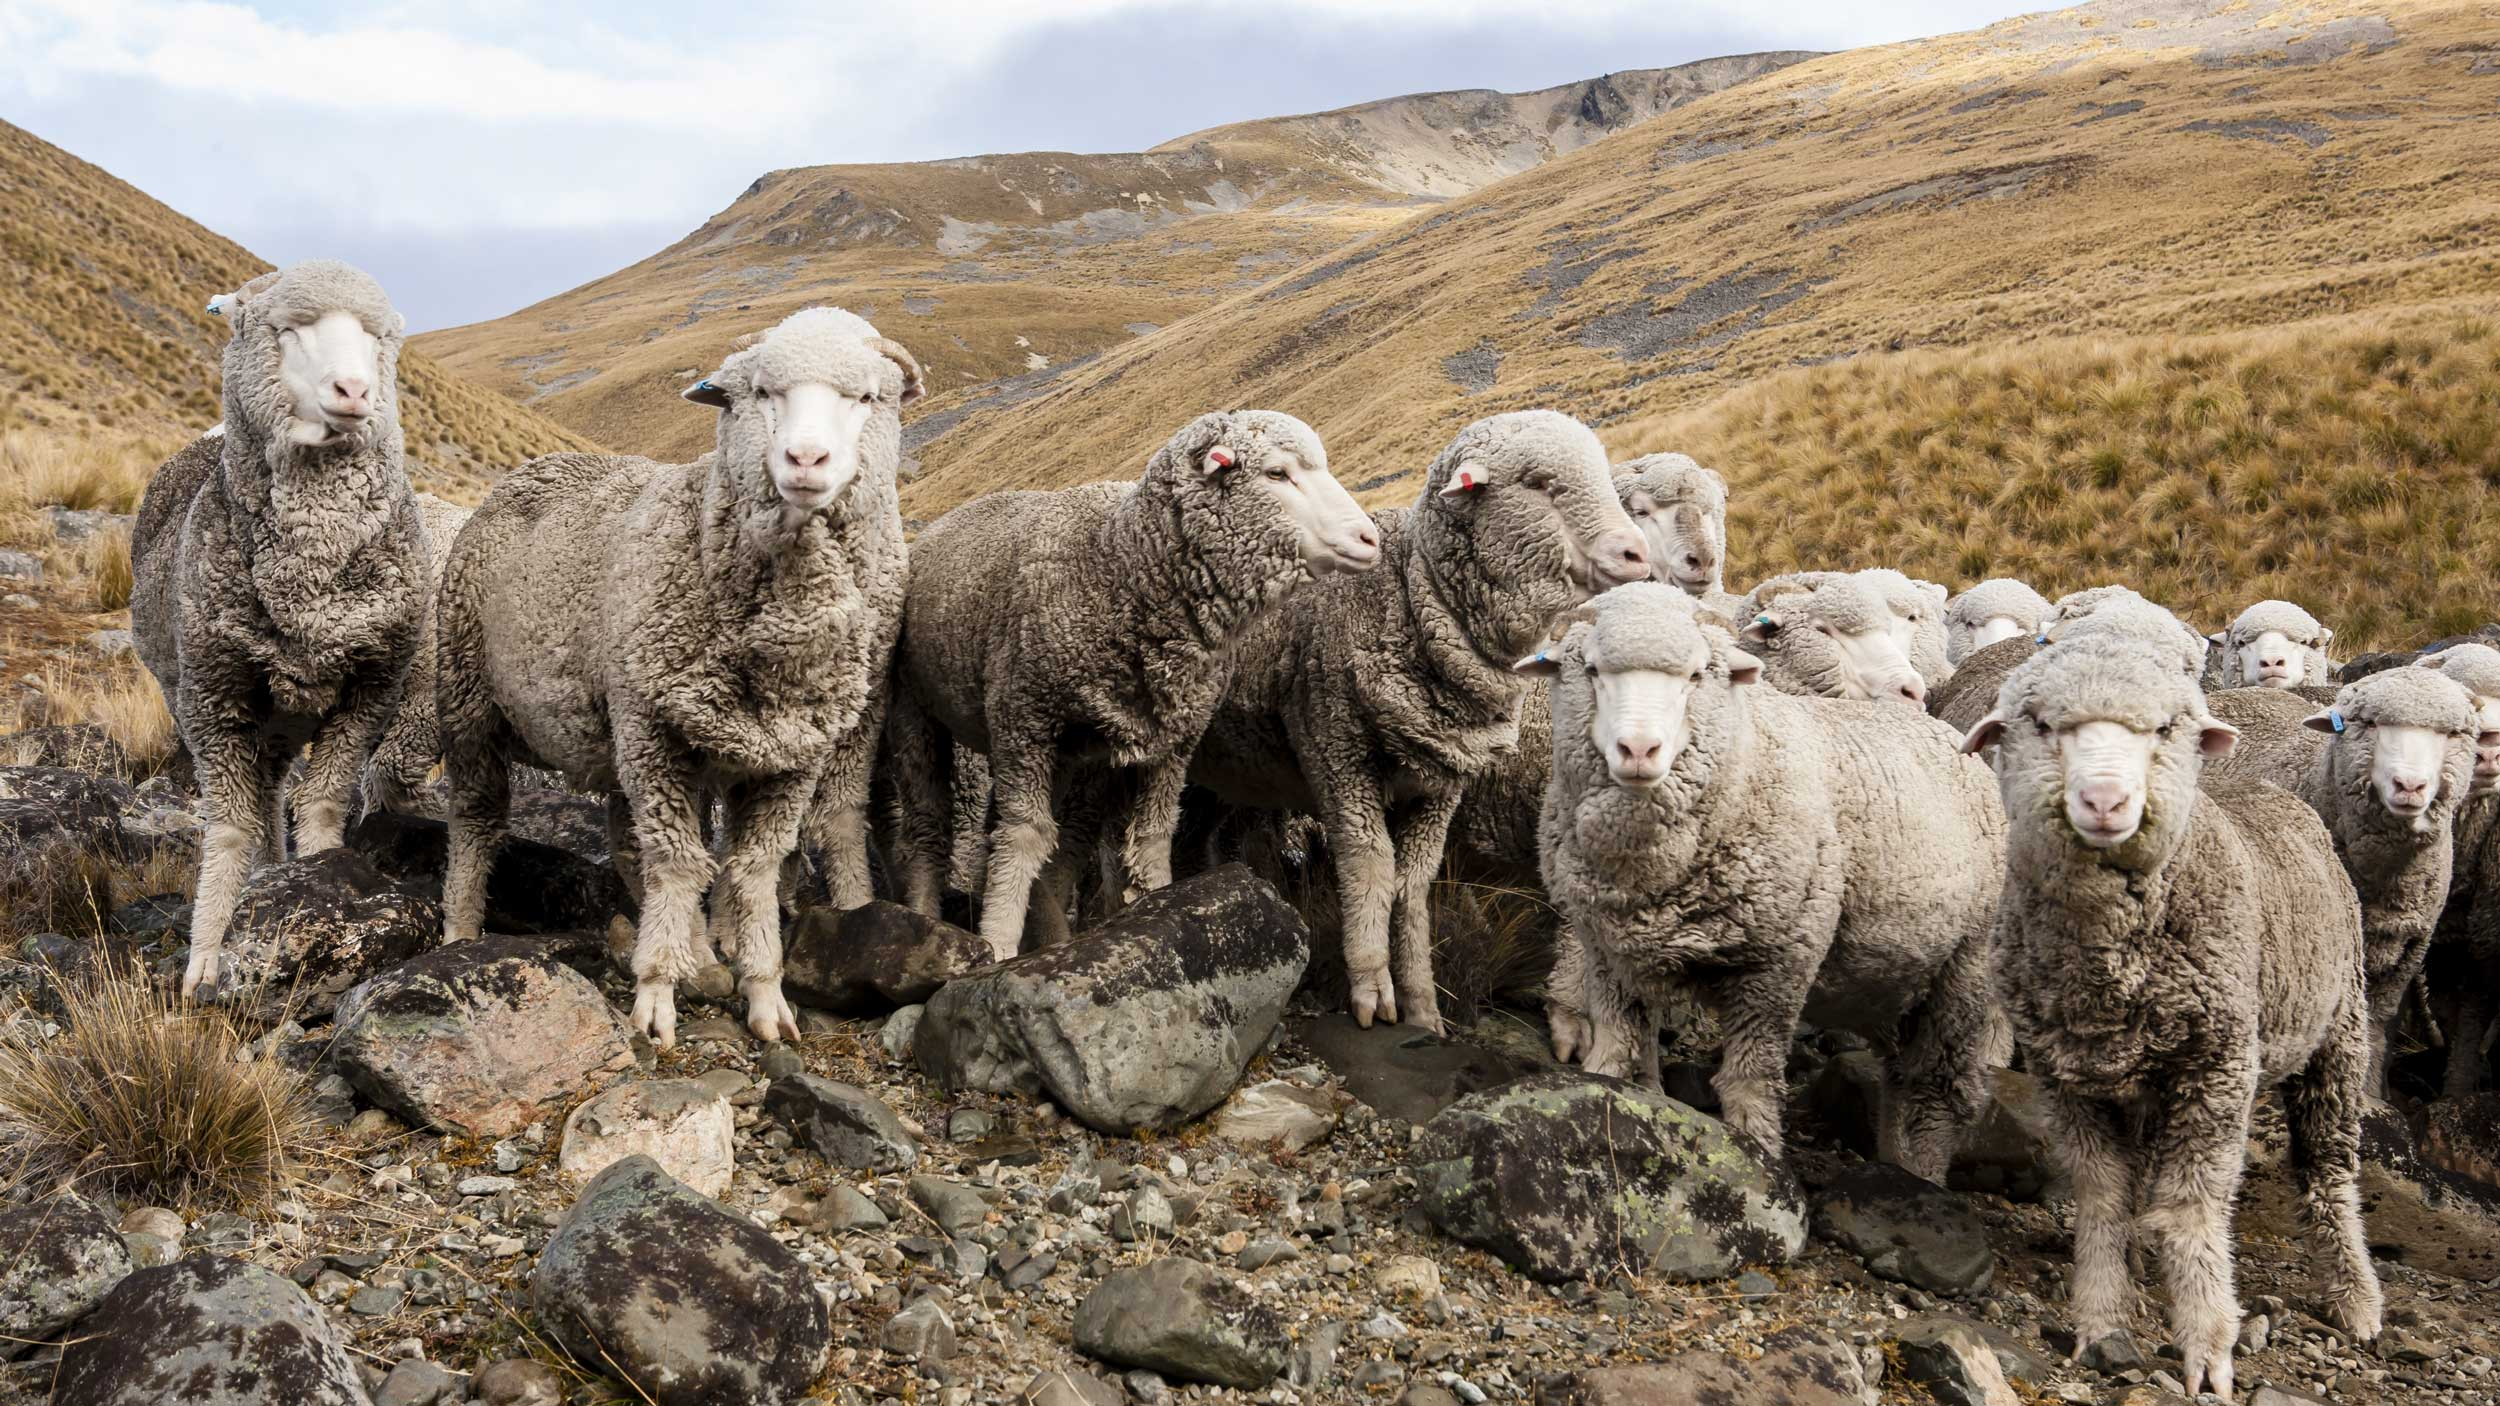 Sheep stand on rocks in front of mountains looking at the camera